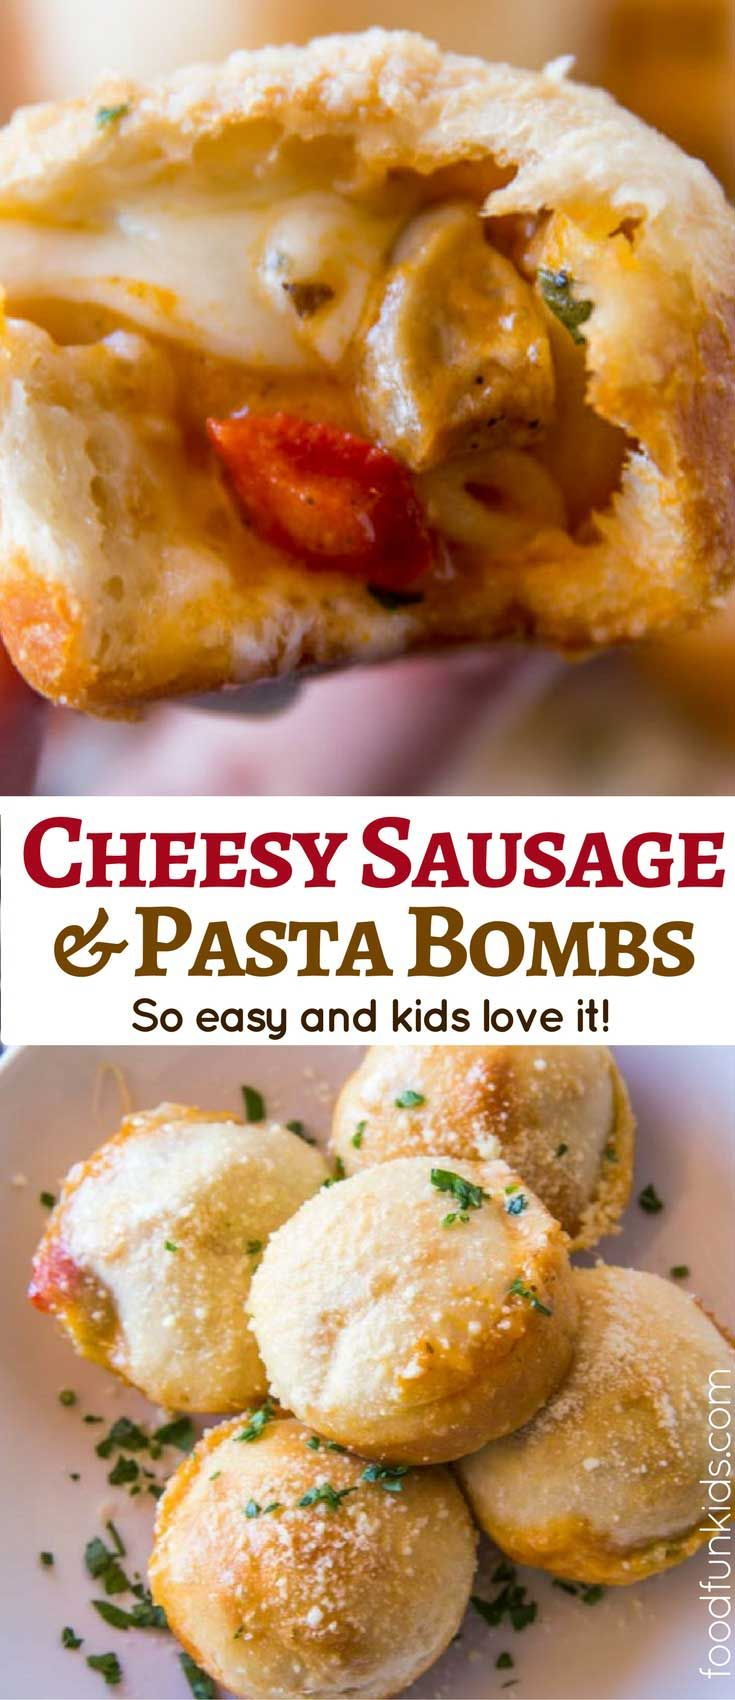 Cheesy Sausage Pasta Bombs are made with a quick and easy sausage pasta mixture and frozen bread dough or pizza dough makes a perfect after-school snack.